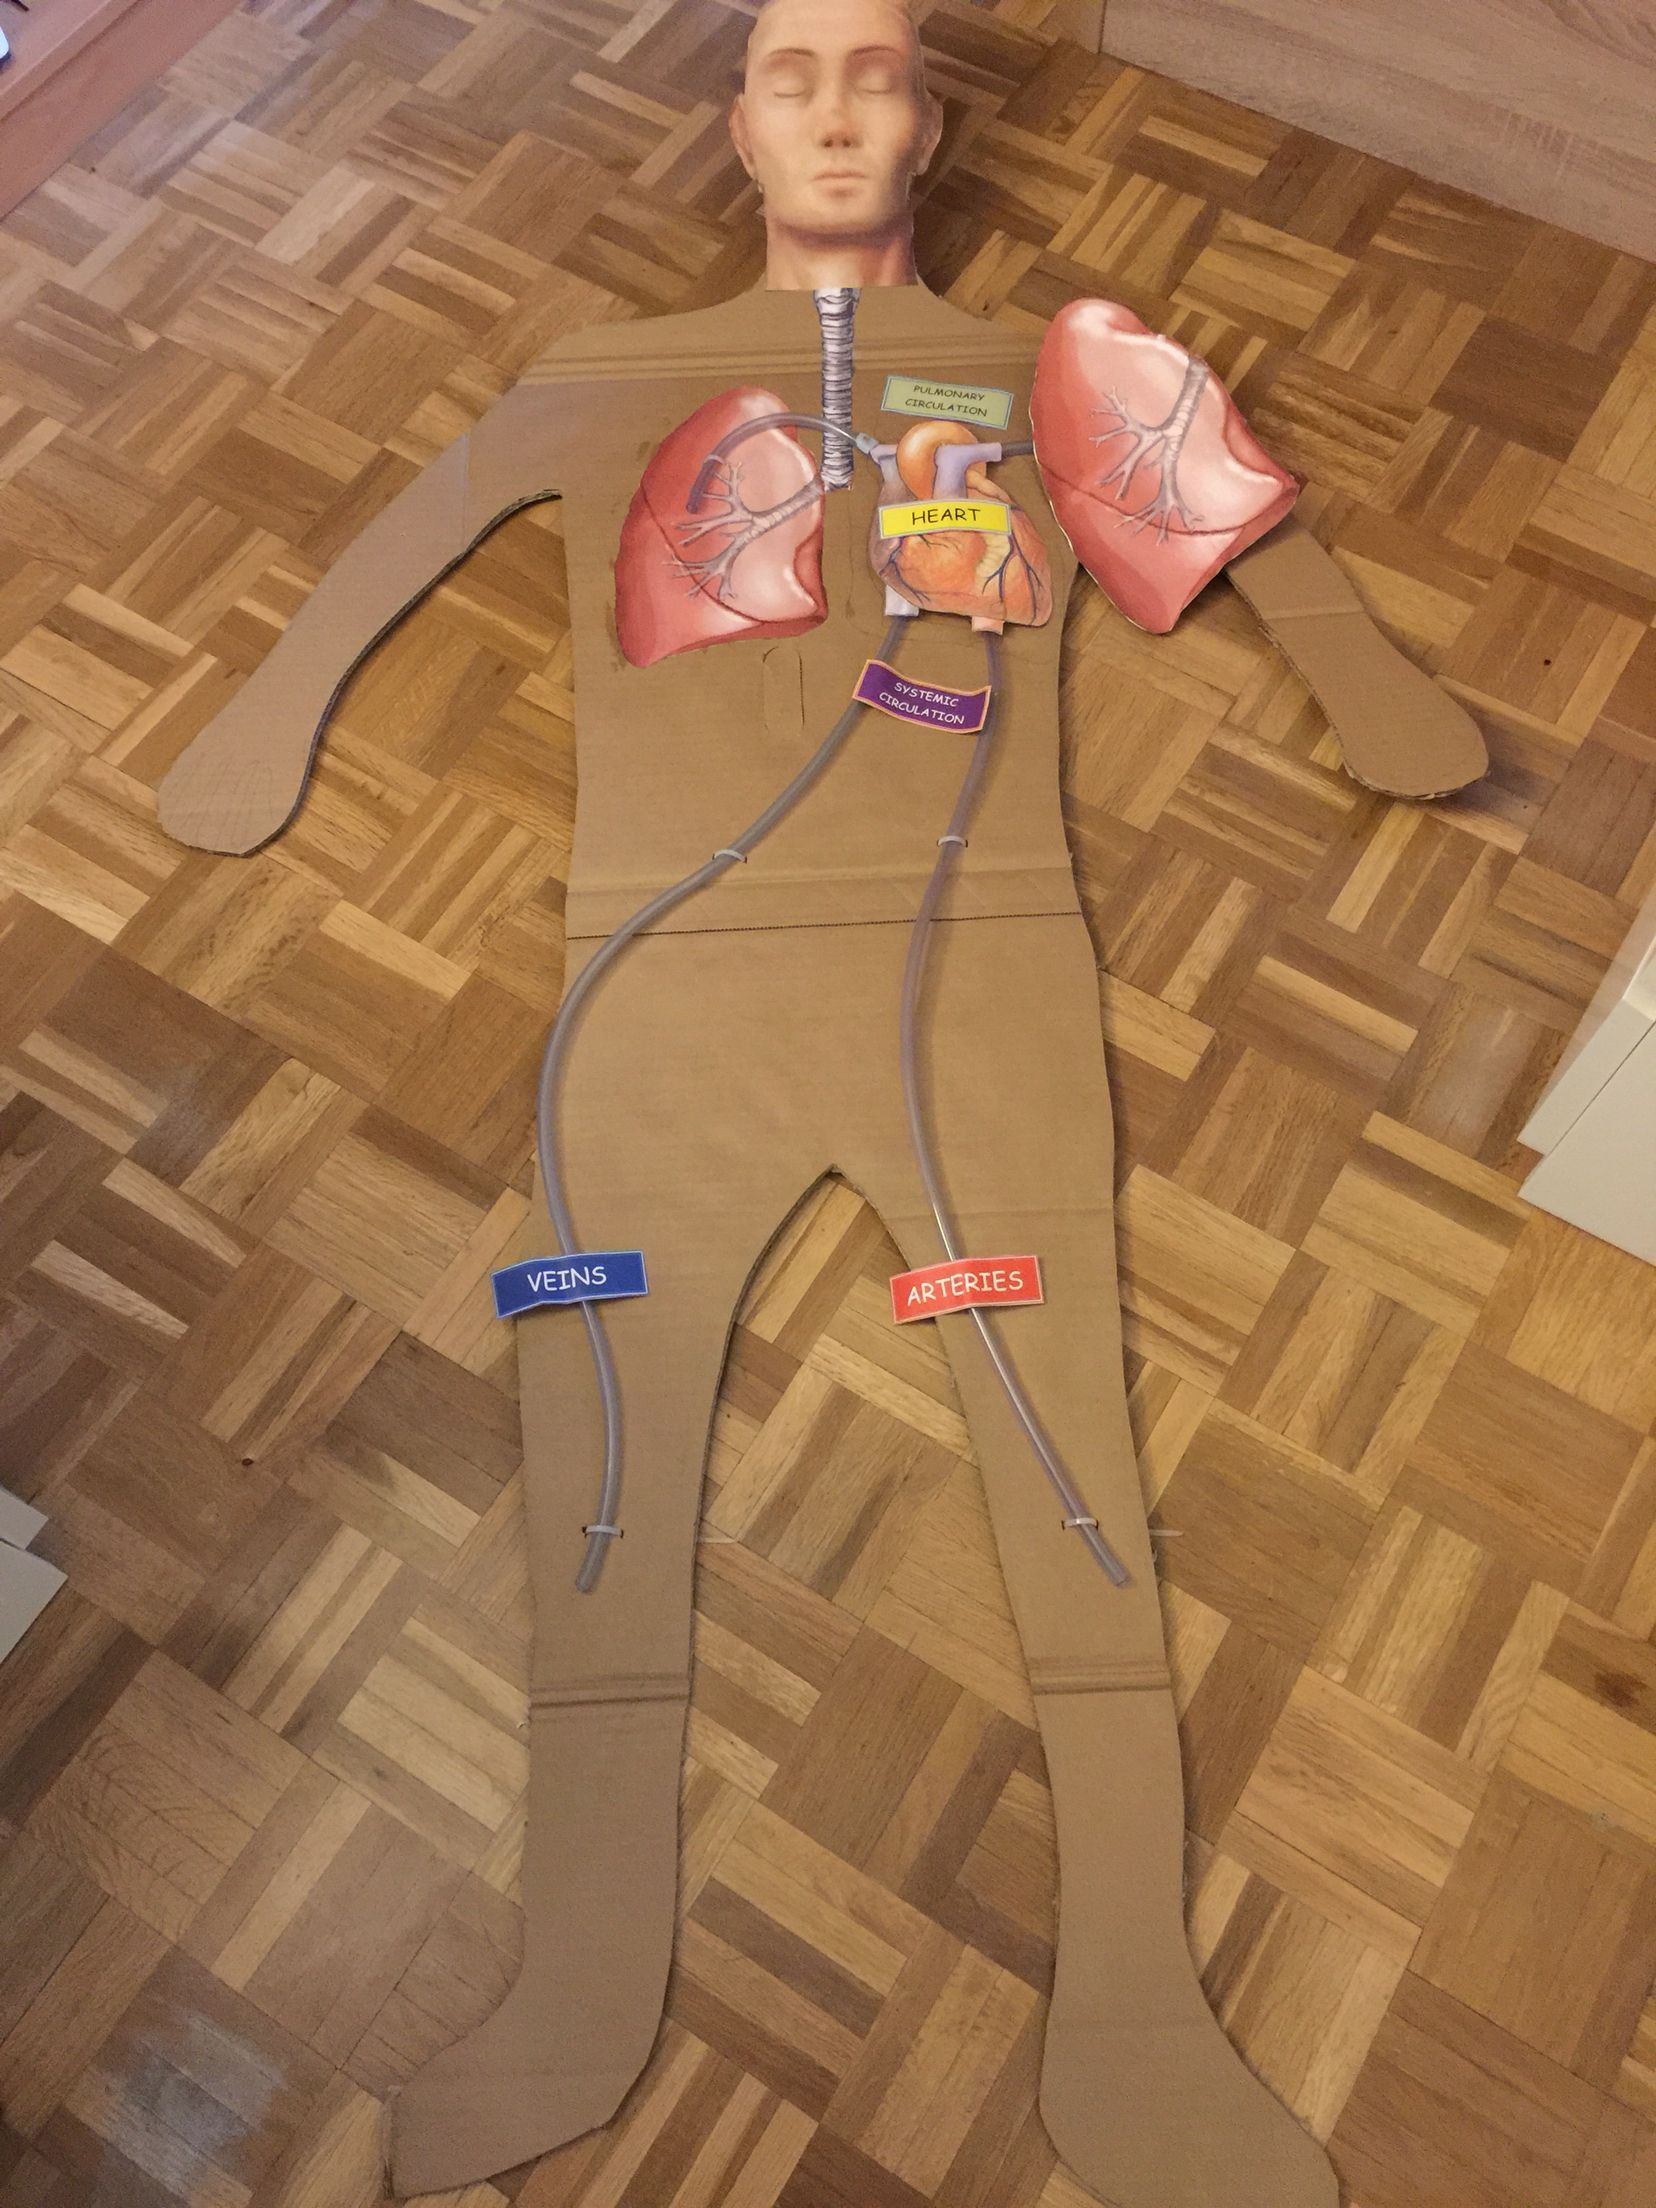 Model making to work the circulatory system, this is a good idea that the student understand the blood circulation.